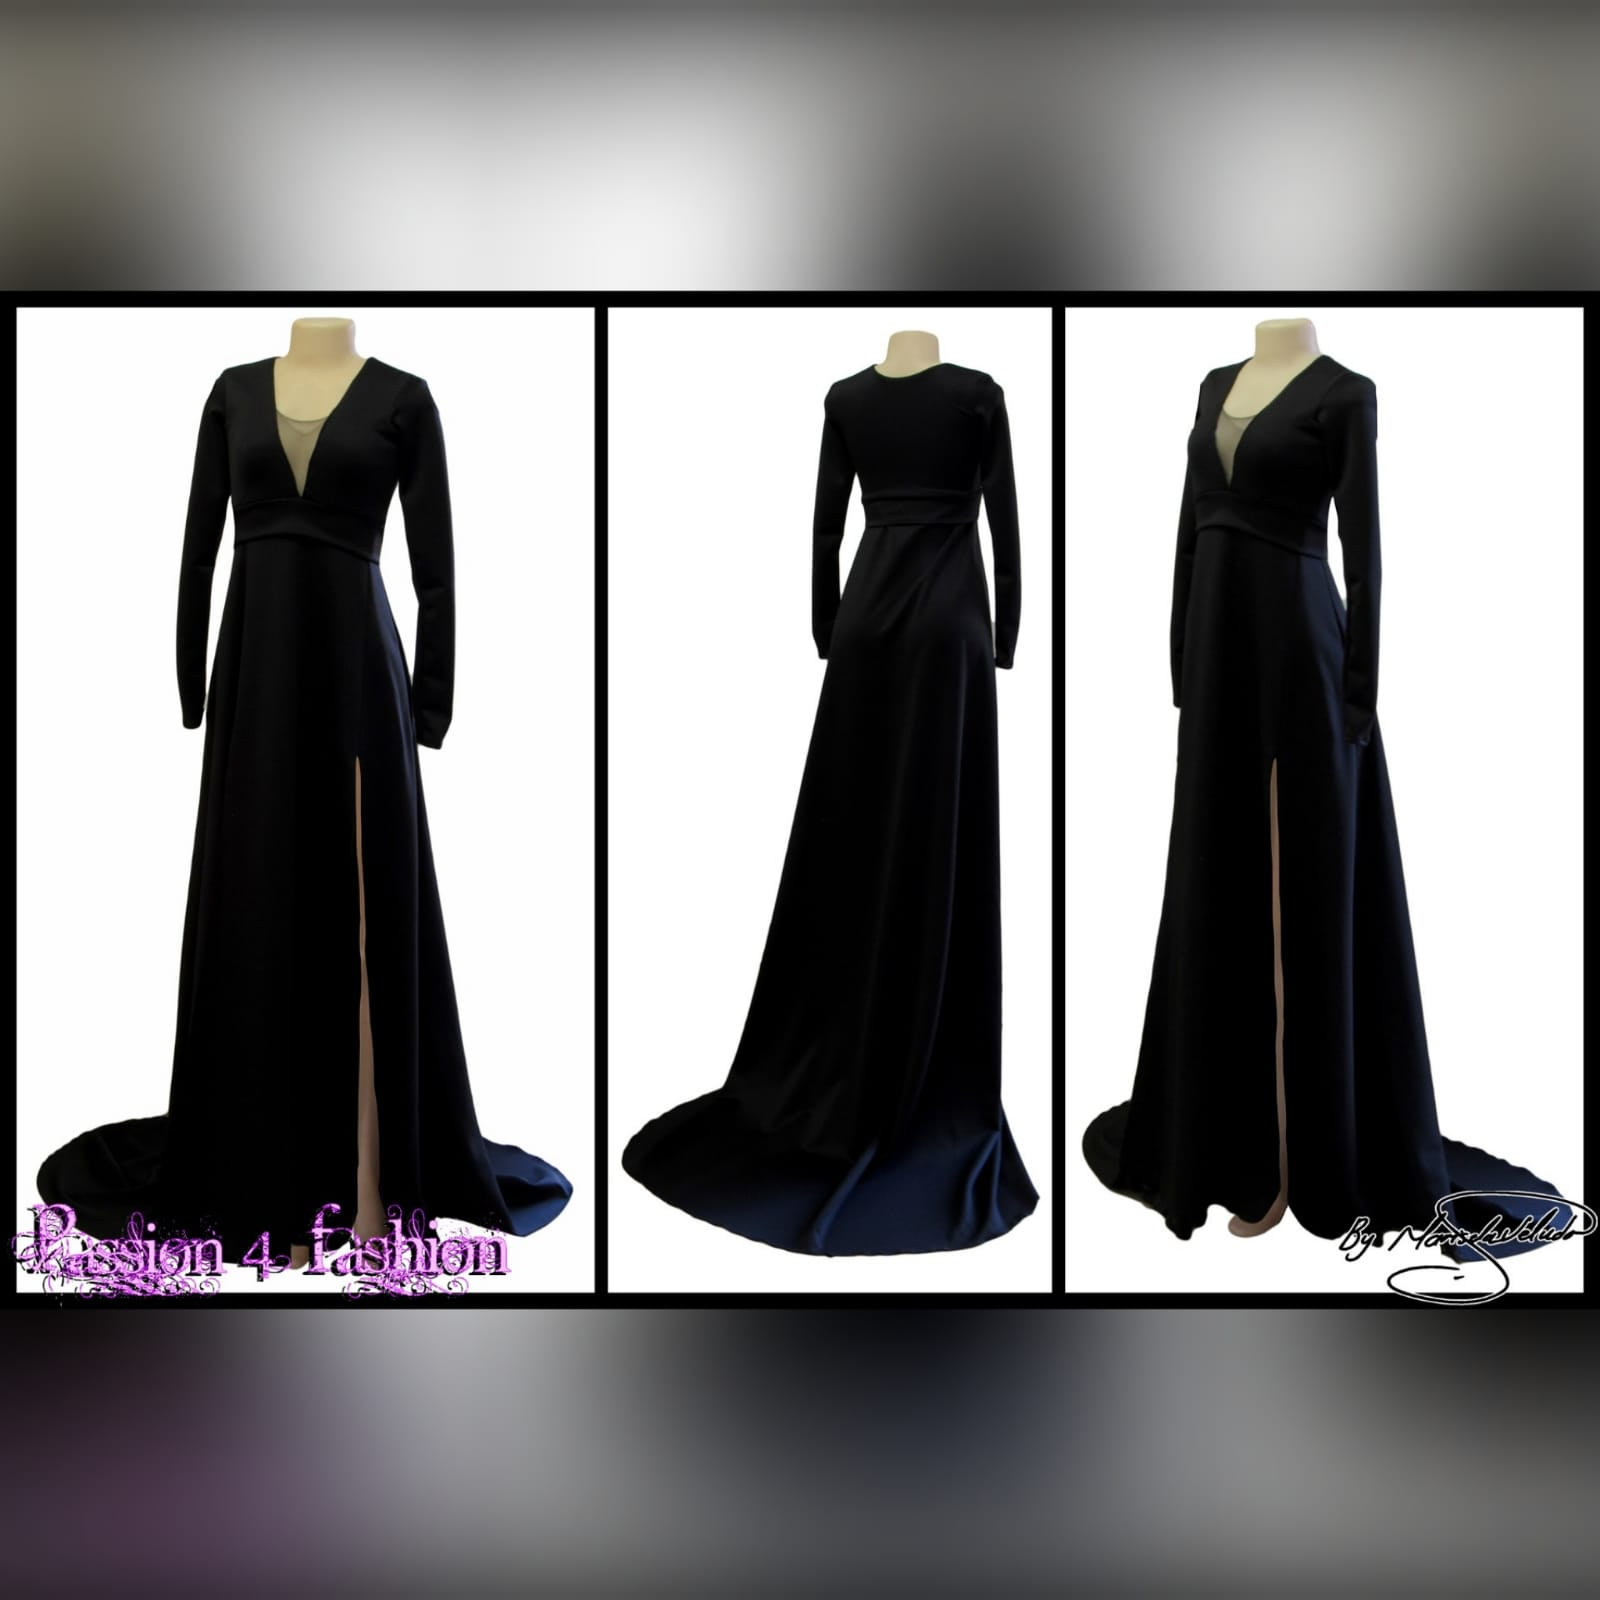 Long black a-line formal dress 3 long black a-line formal dress with an illusion v neckline, long sleeves a slit and a train.